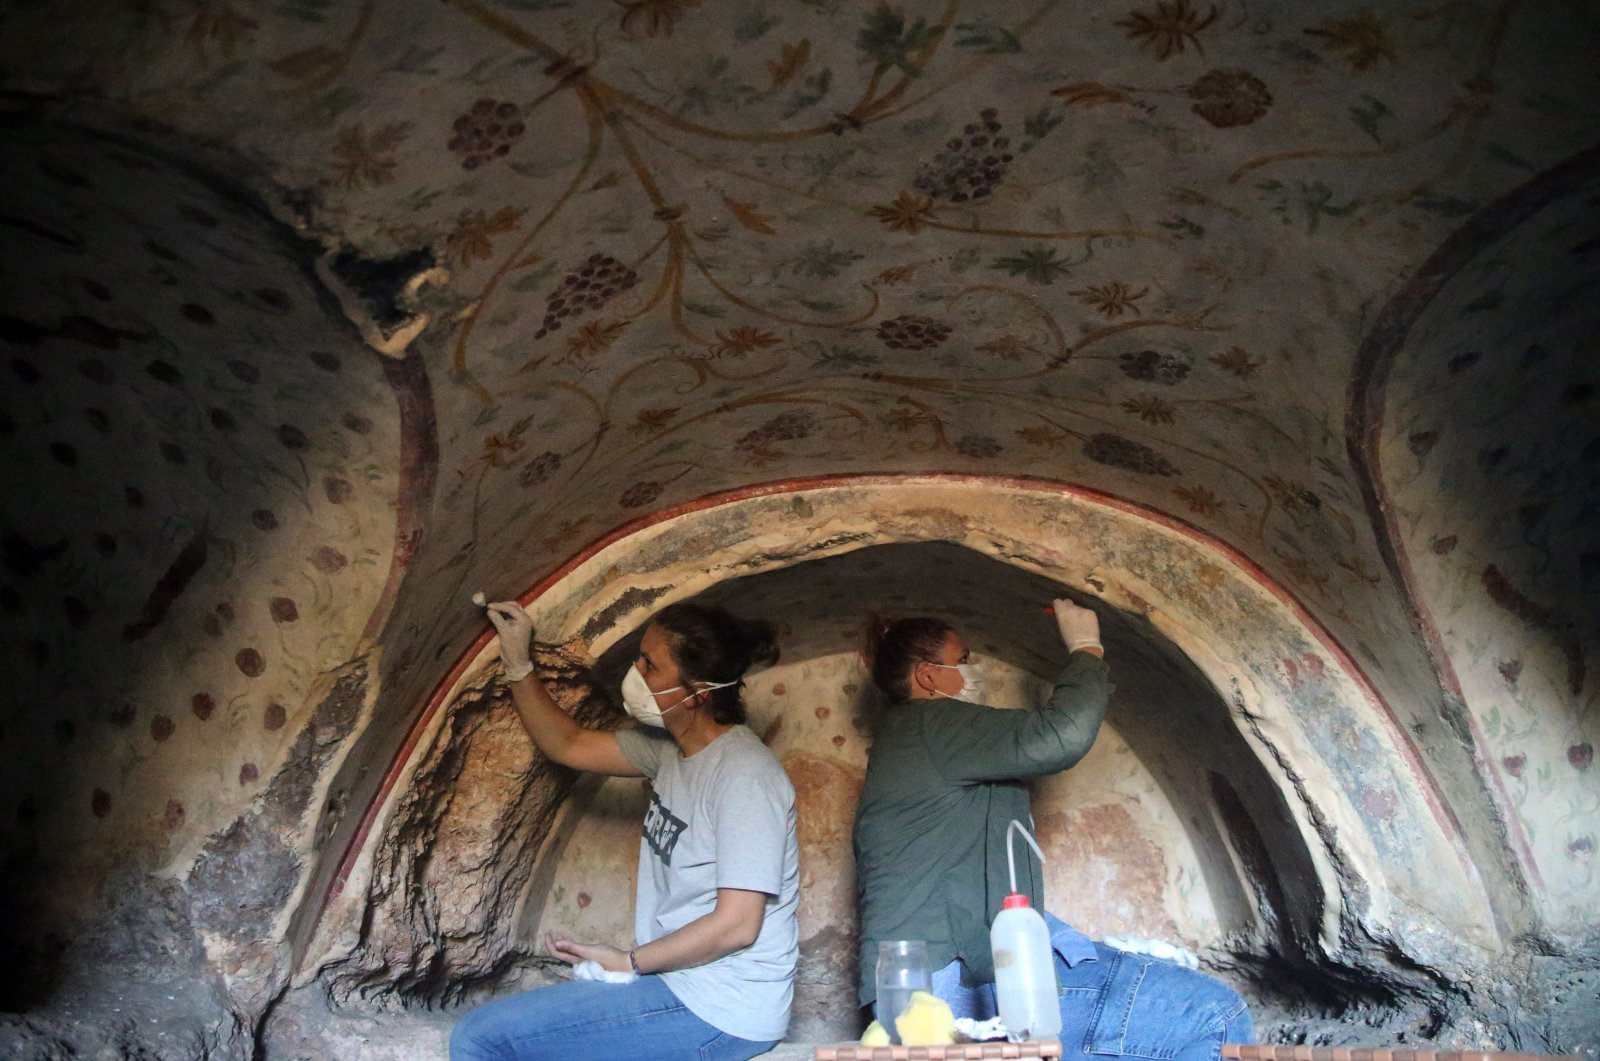 Two archaeologists work on the wall motifs of a room inside a rock tomb in the ancient city ofBlaundus, Uşak, western Turkey, Sept. 29, 2021. (AA Photo)